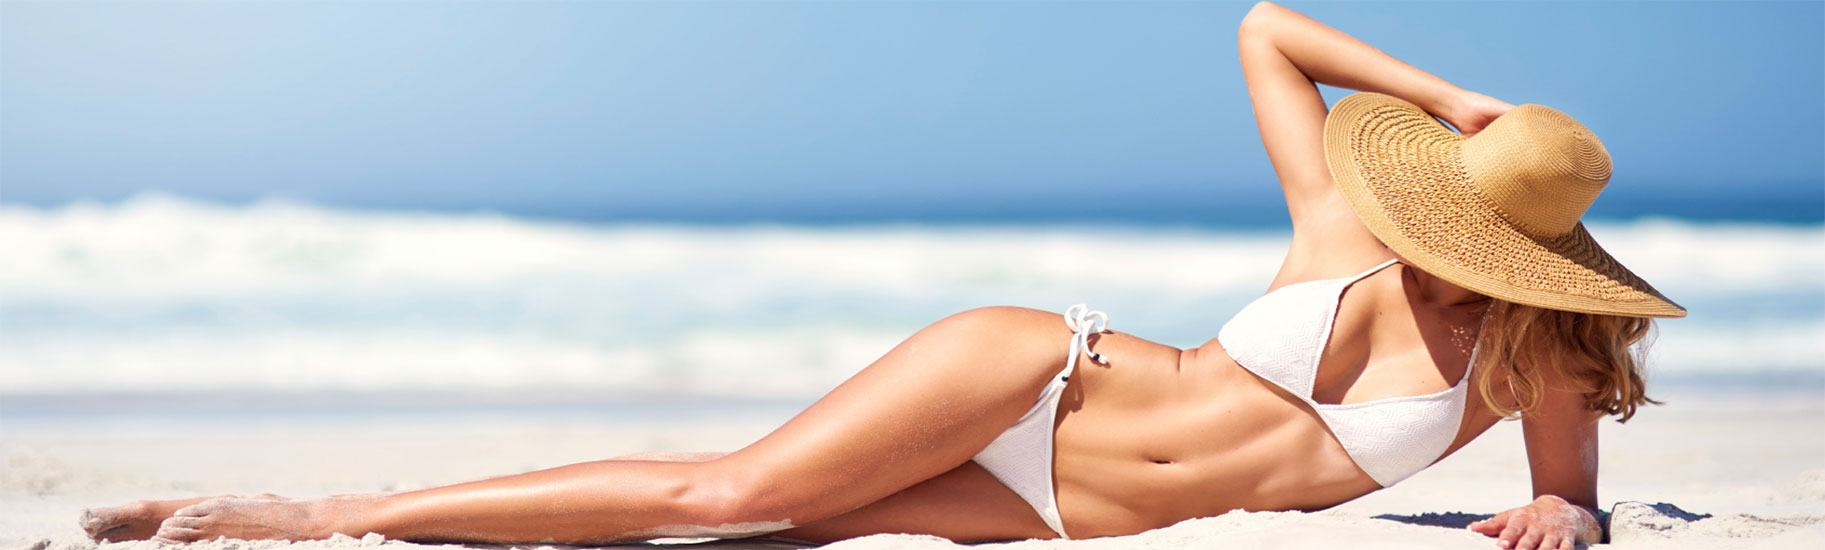 Laser Liposuction NYC | Long Island | Liposuction Surgery Long Island